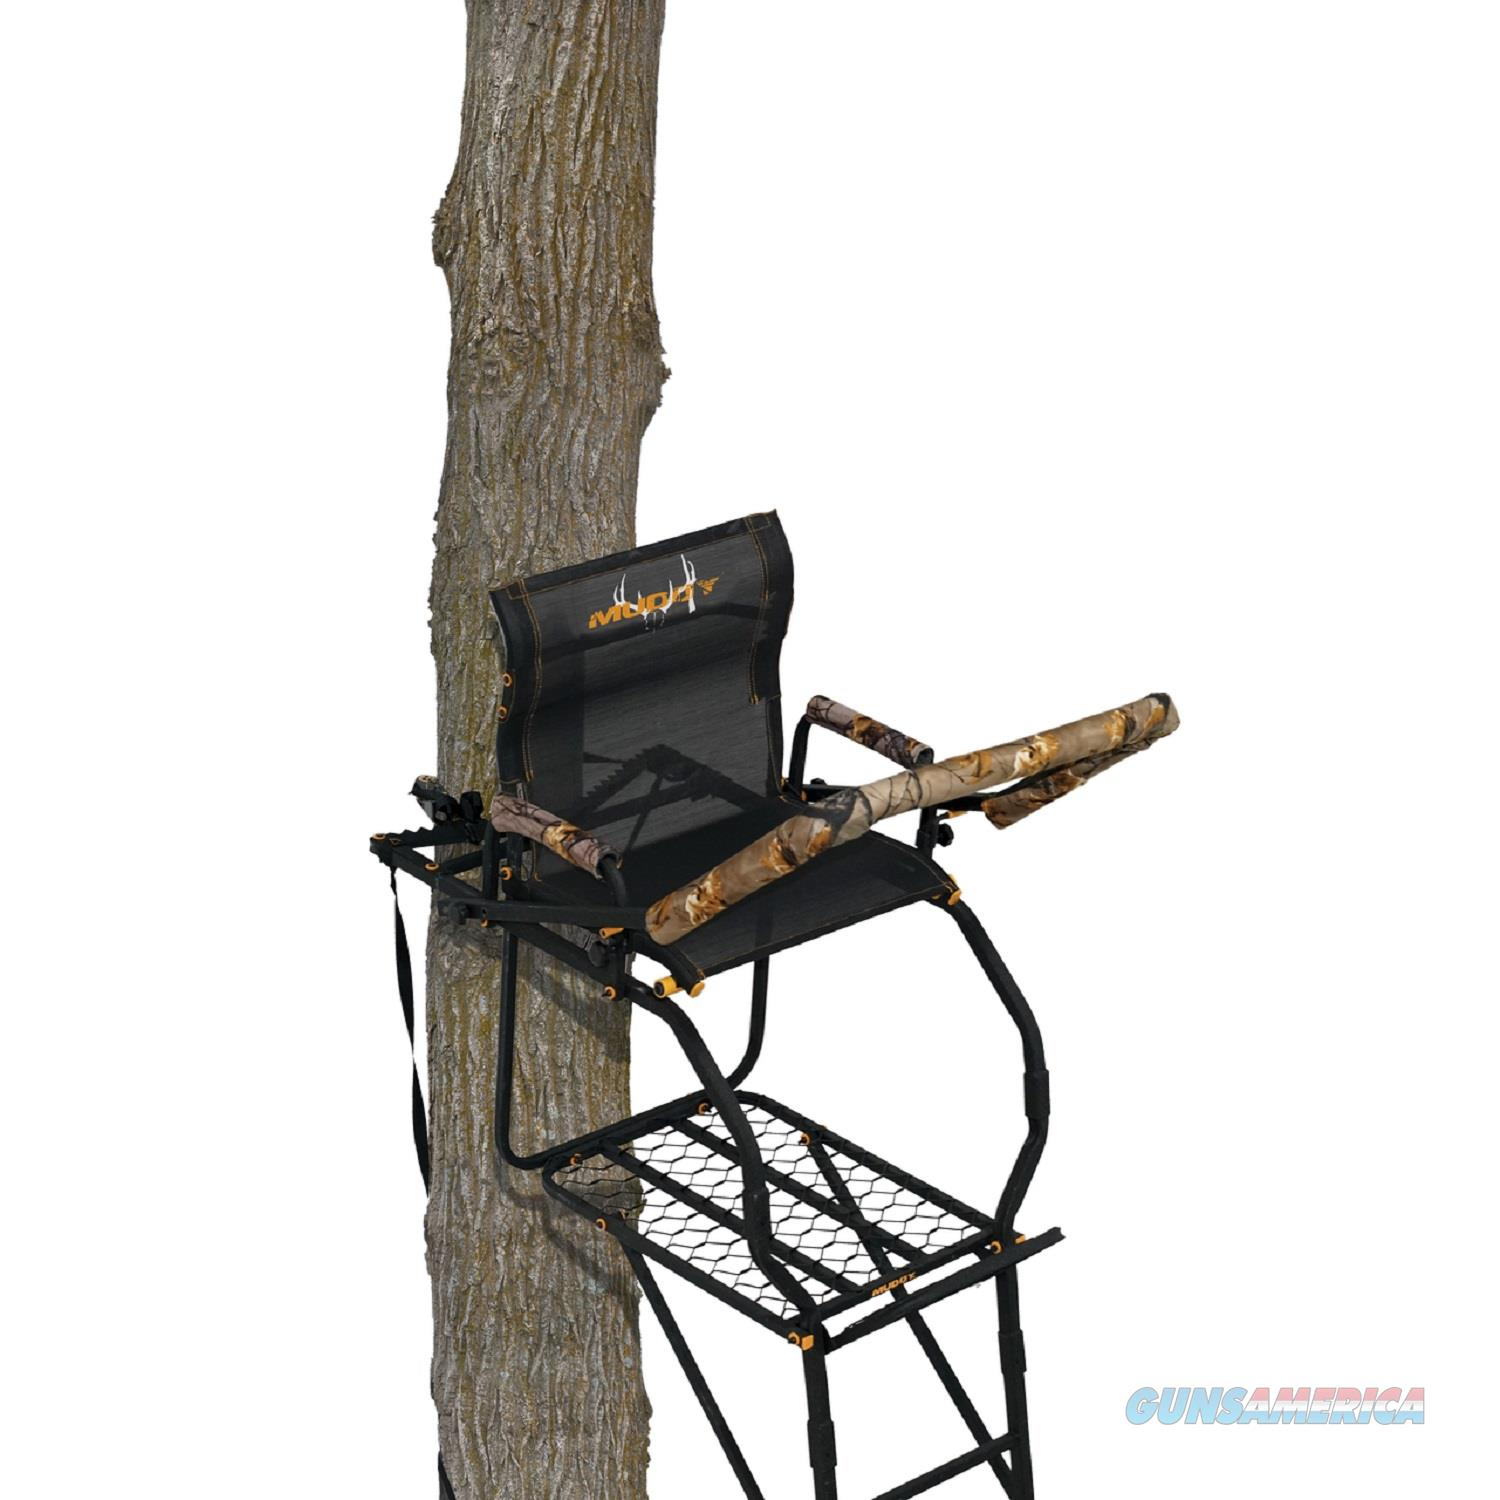 Muddy Excursion 17 Foot Ladder Treestand MLS1300  Non-Guns > Hunting Clothing and Equipment > Tree Stands